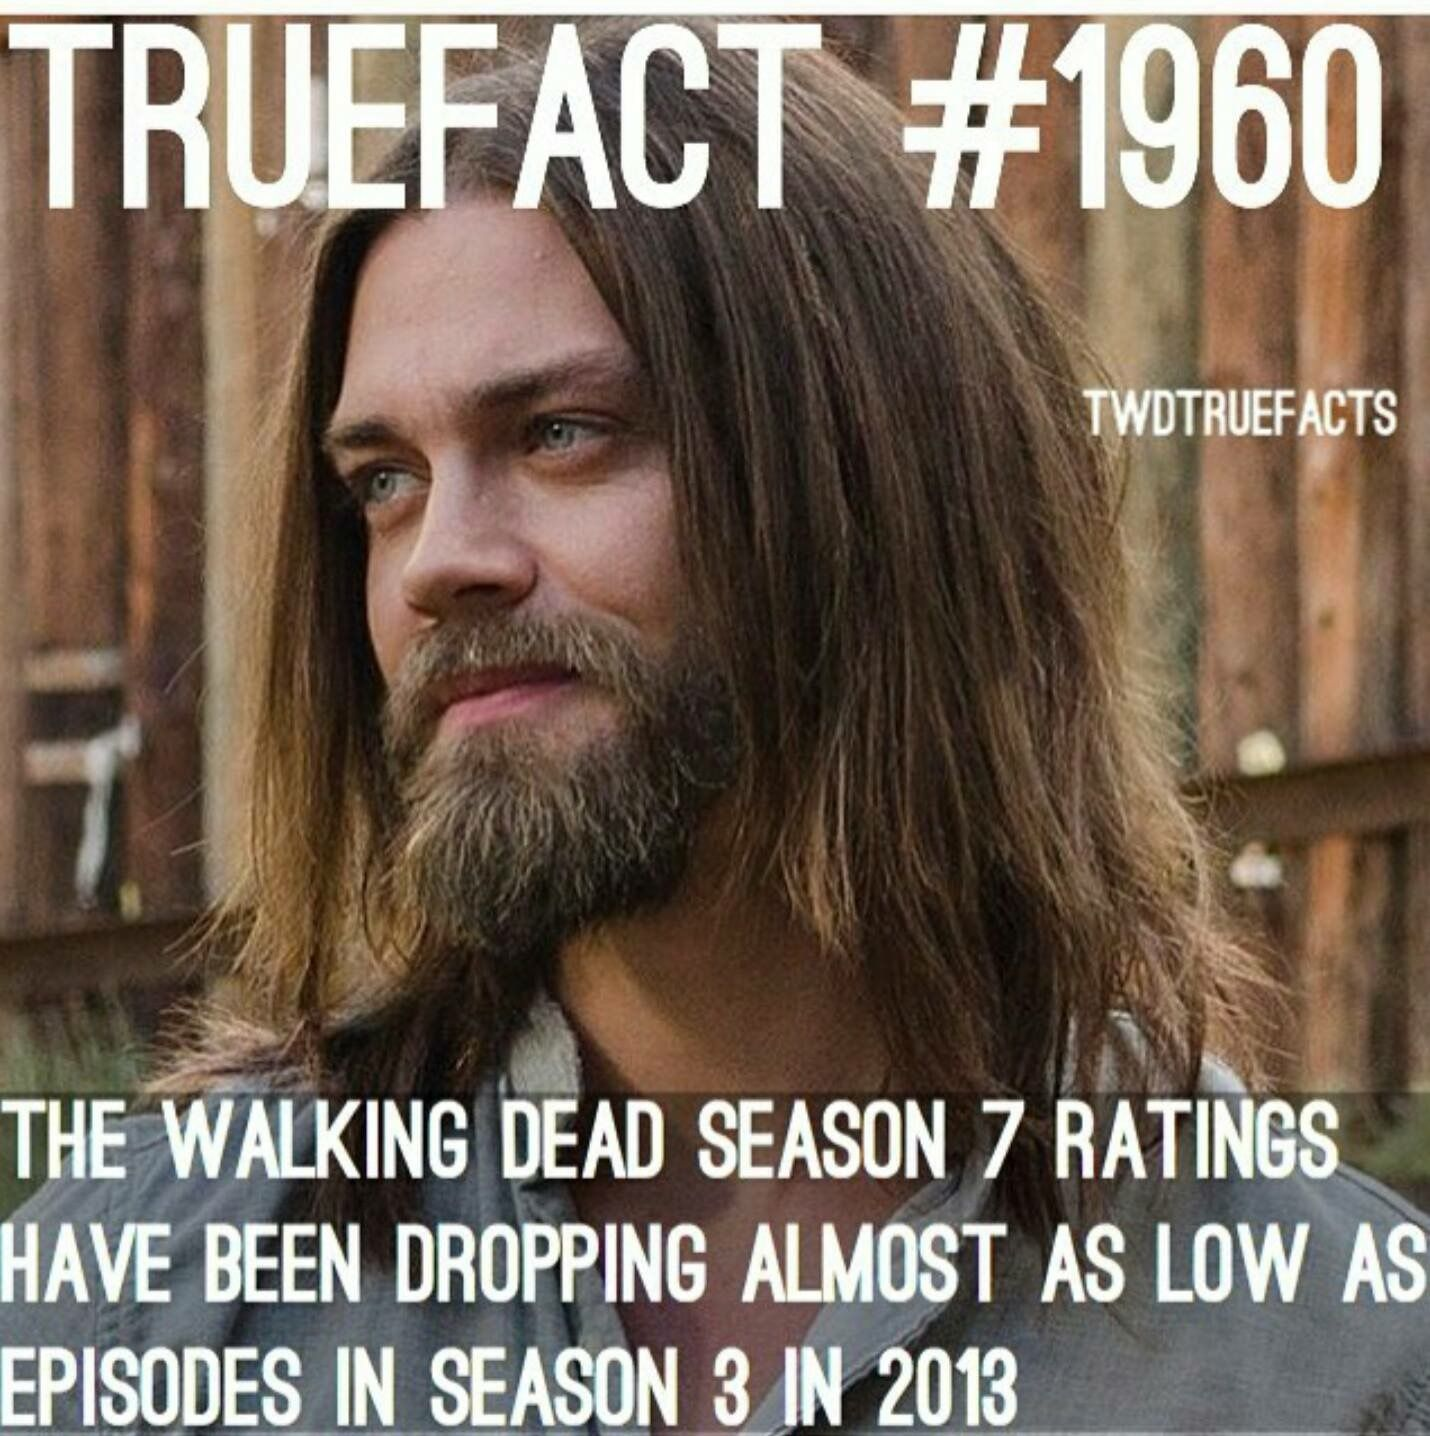 Pin By Erica On Walking Dead Truefacts The Walking Dead Walking Dead Facts The Walking Dead Tv